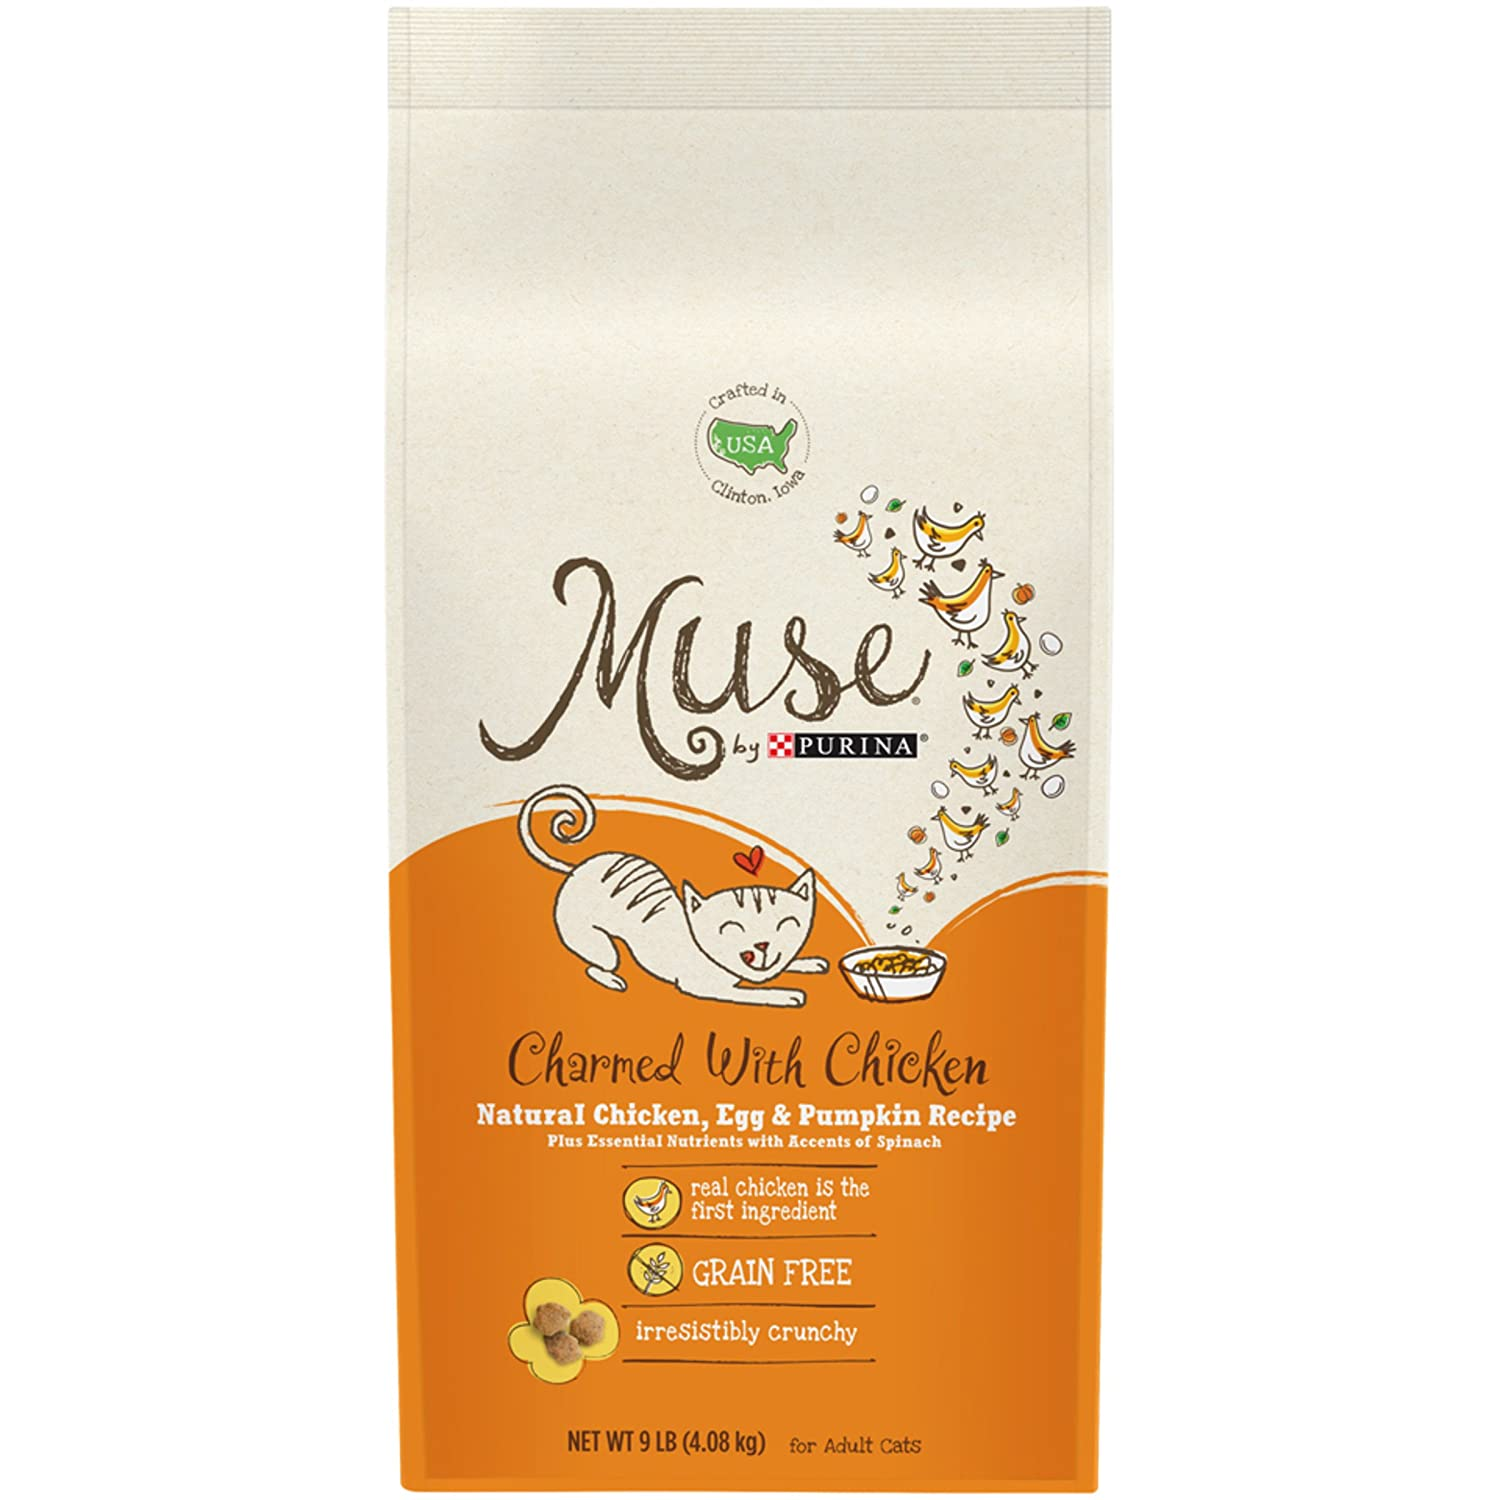 Muse By Purina Charmed With Chicken Natural Chicken, Egg & Pumpkin Recipe Adult Dry Cat Food